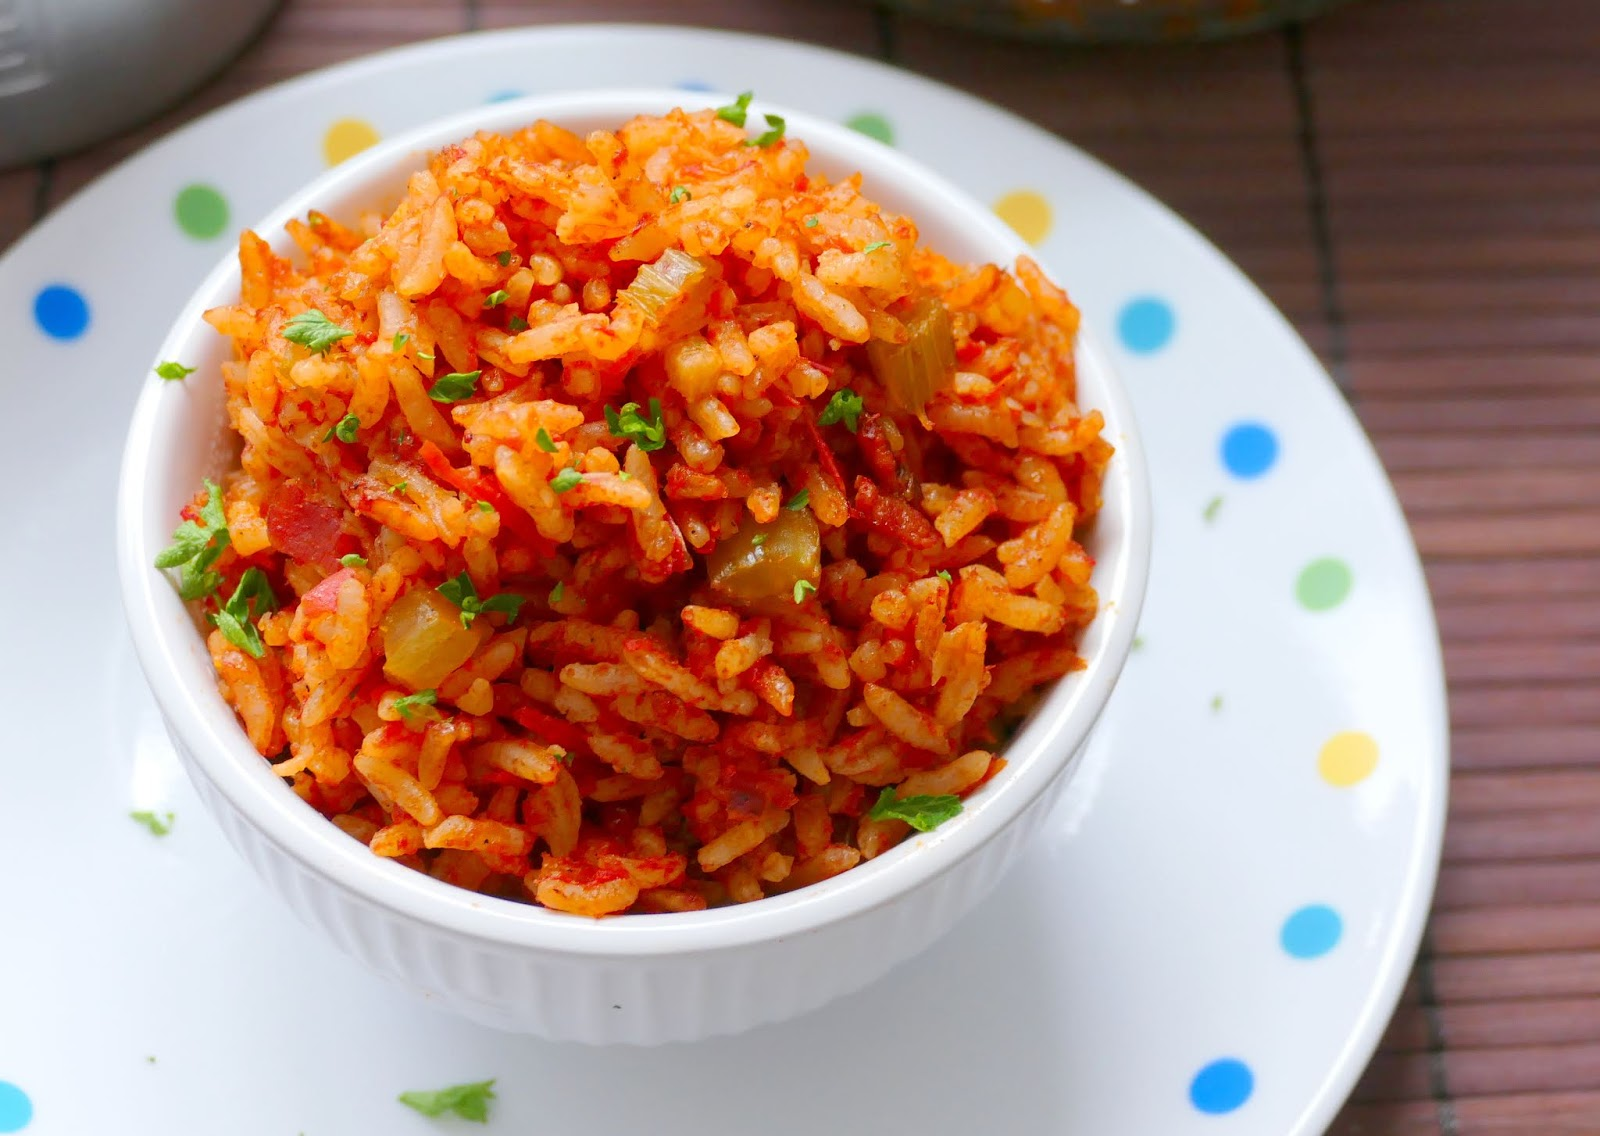 Southern Bacon Red Rice Recipe from Hot Eats and Cool Reads! Everything is better with bacon, especially this traditional southern side dish! Packed with flavor from tomatoes, onion, celery and garlic!